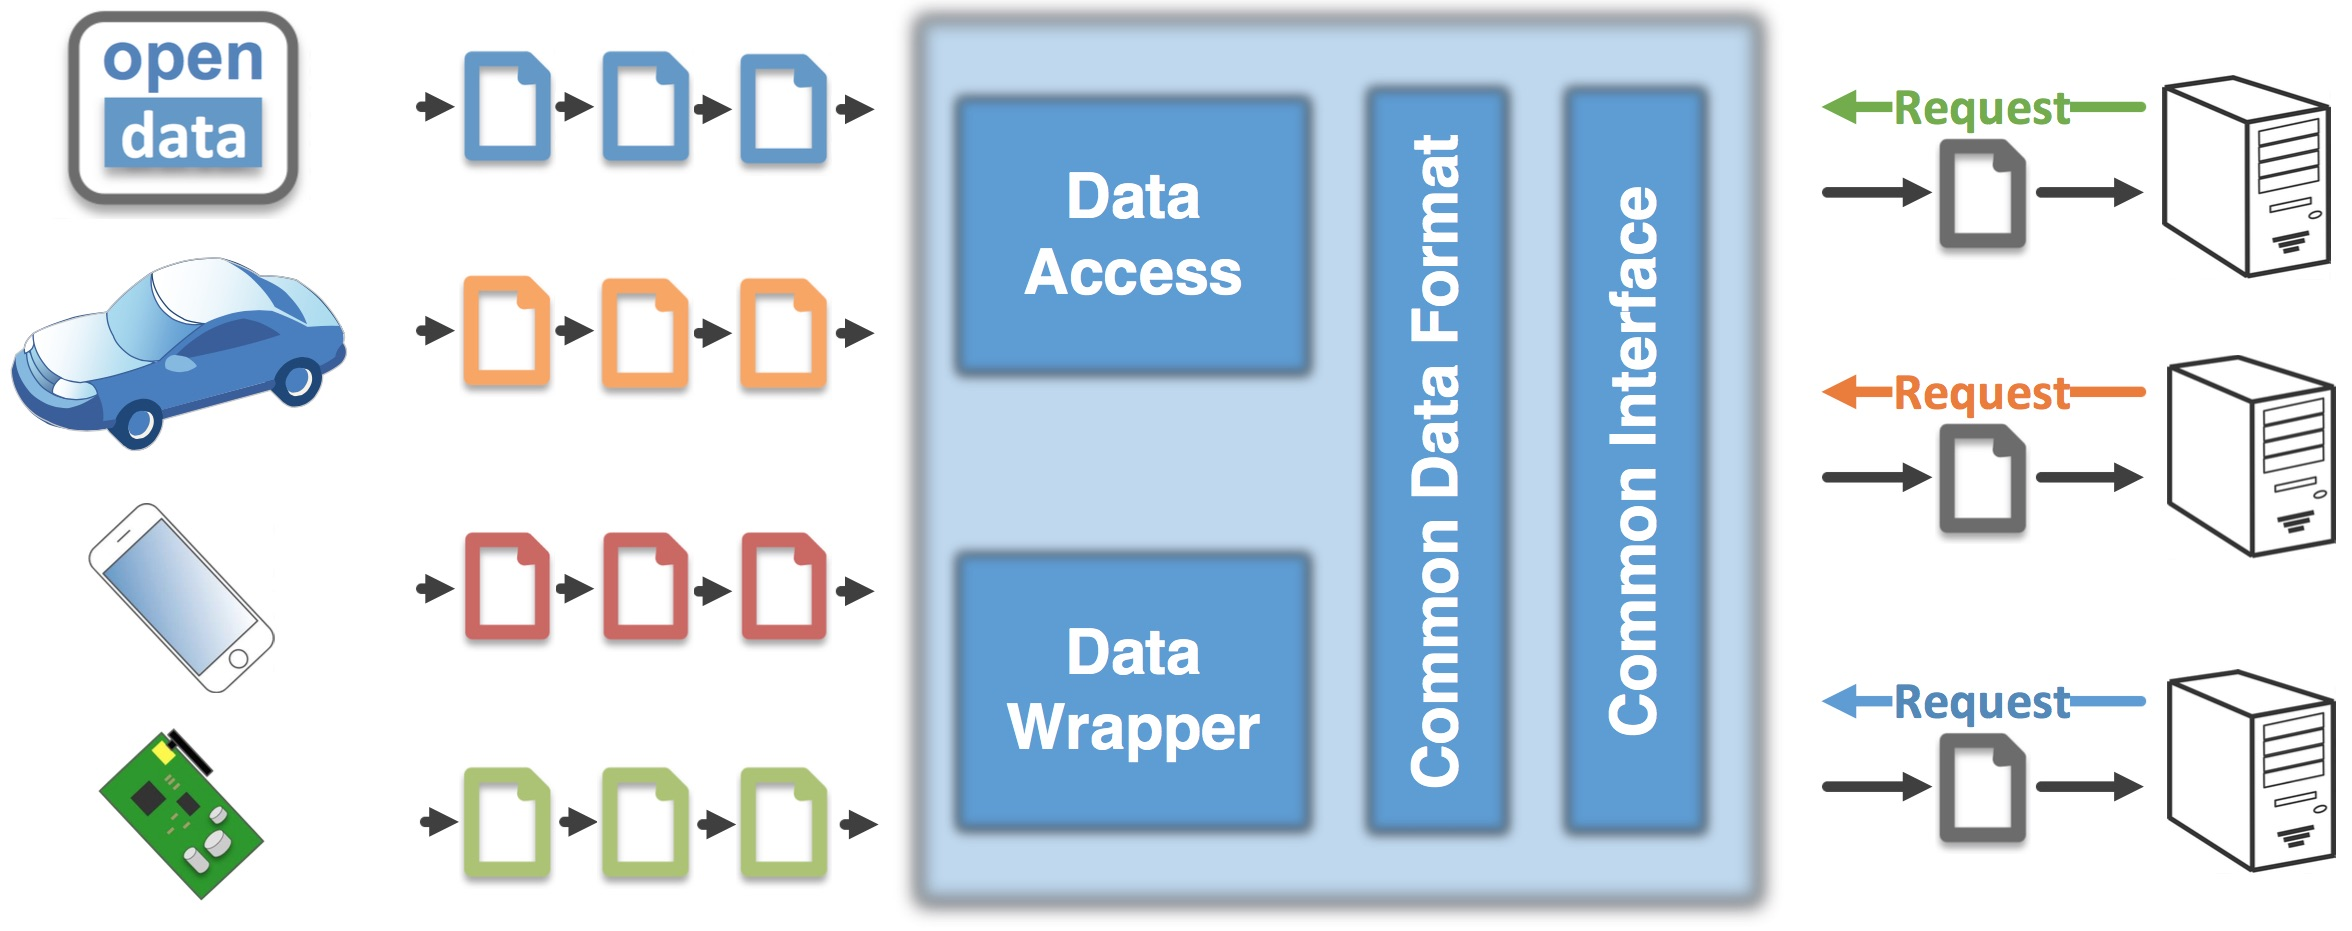 vm_common_data_access